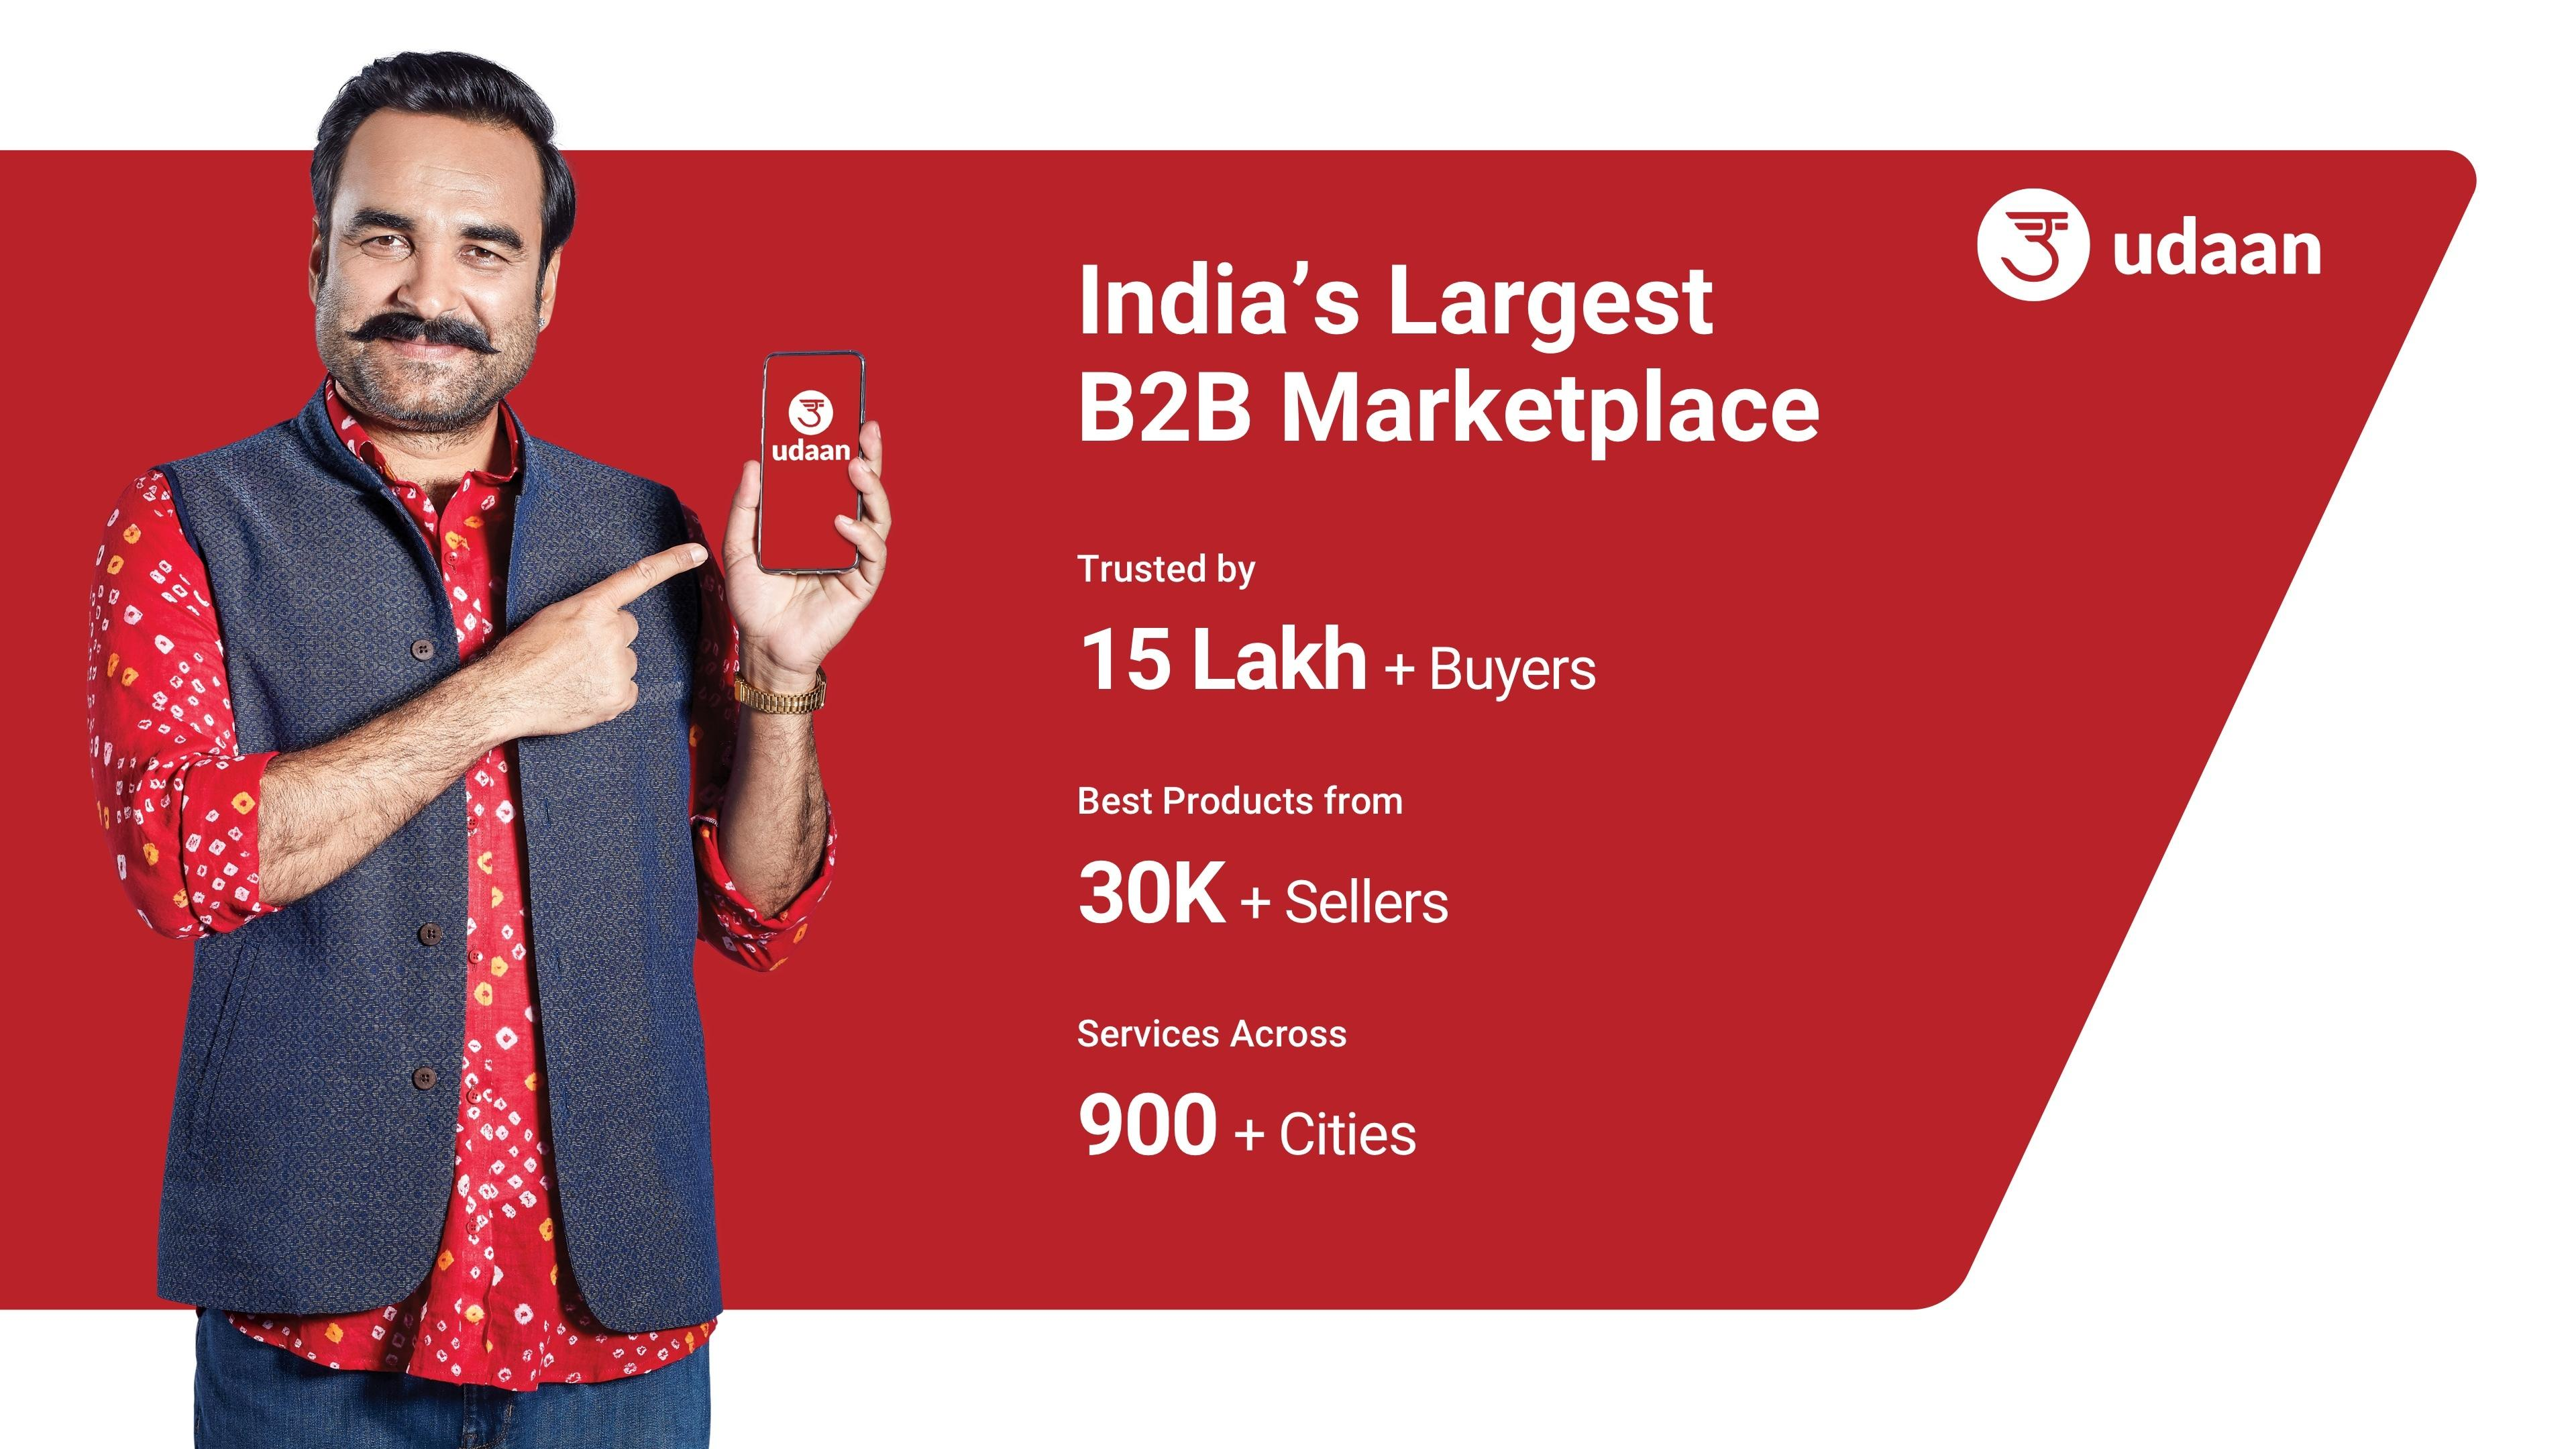 udaan: Online B2B Buying for Retailers for Android - APK Download